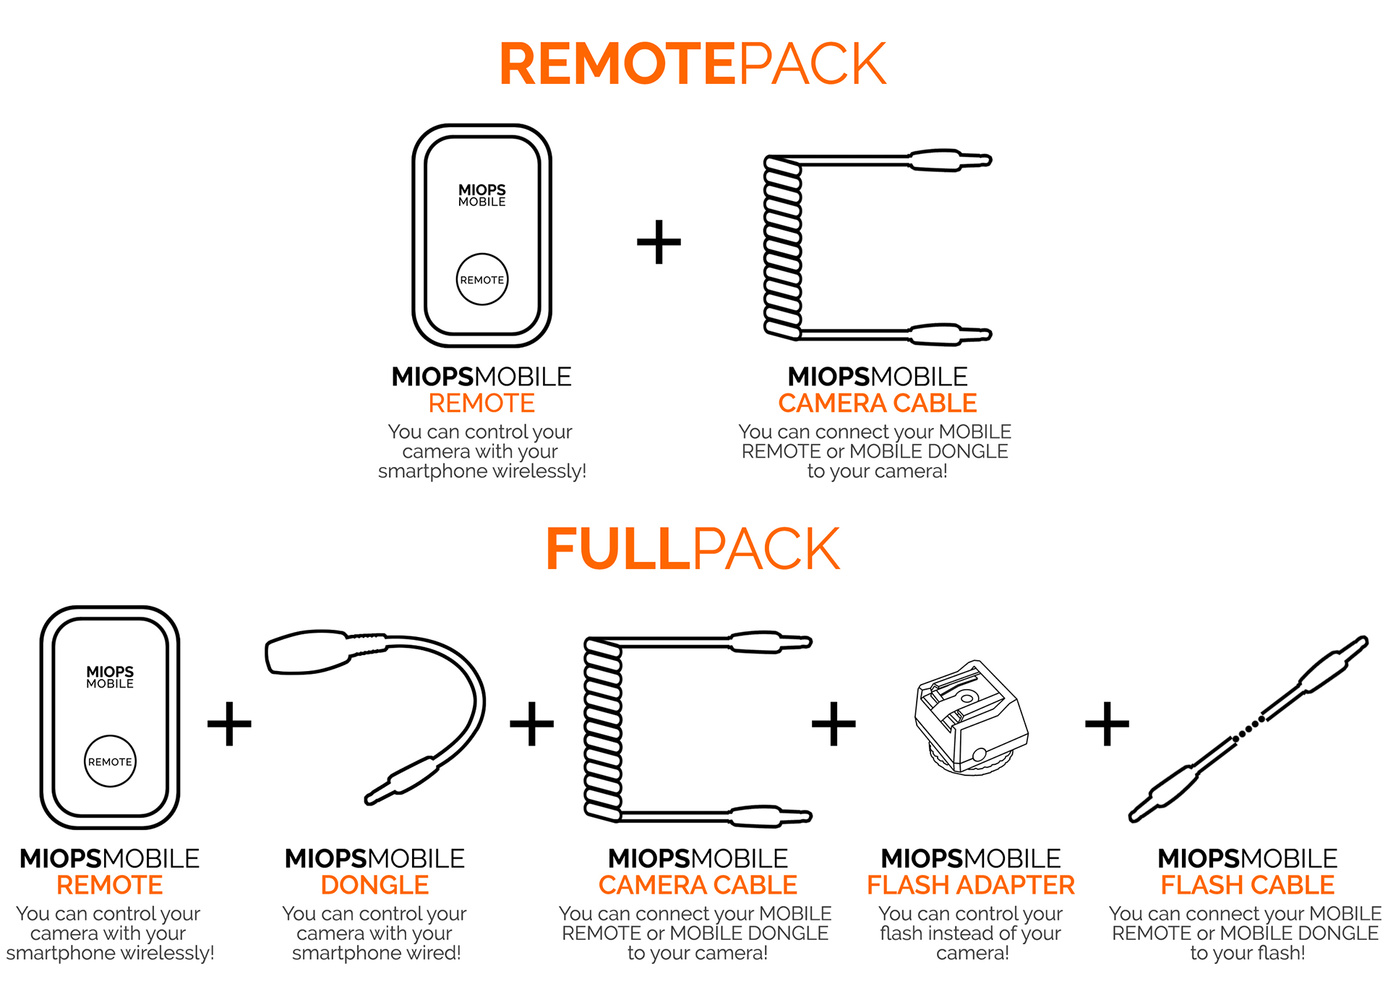 miops mobile packages kickstarter pledges